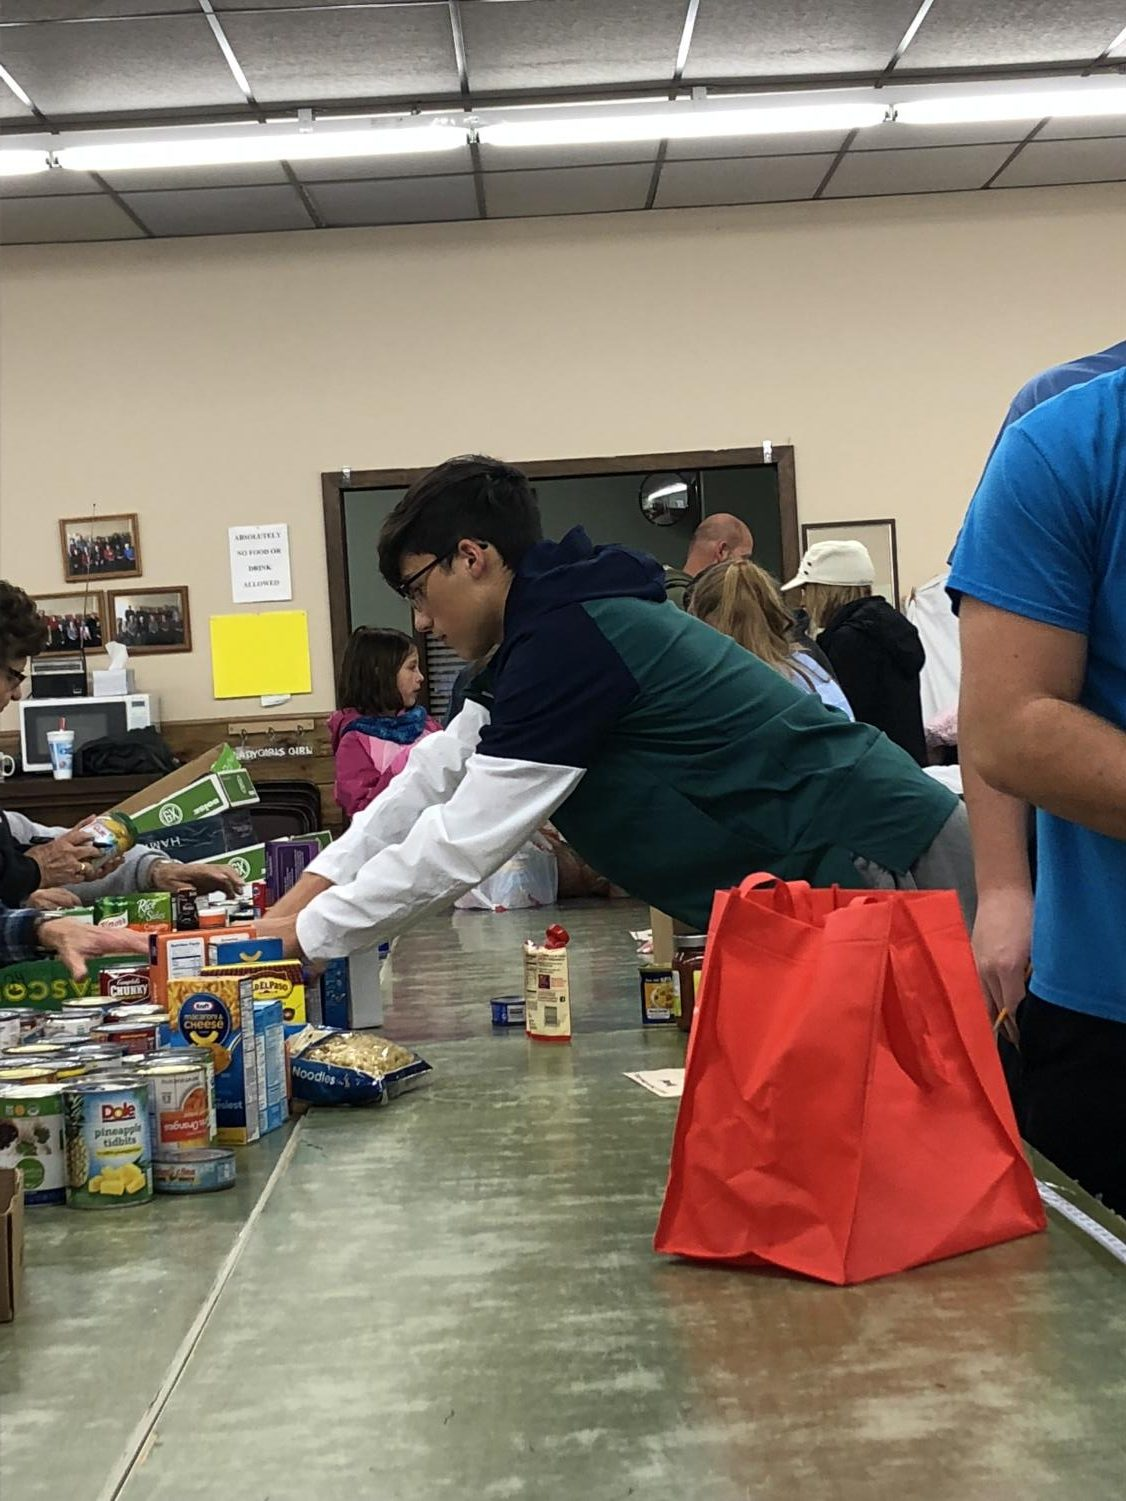 DECA+members+sort+through+food+items+brought+in+by+volunteers.+Several+different+organizations+helped+collect+nonperishable+food+items.